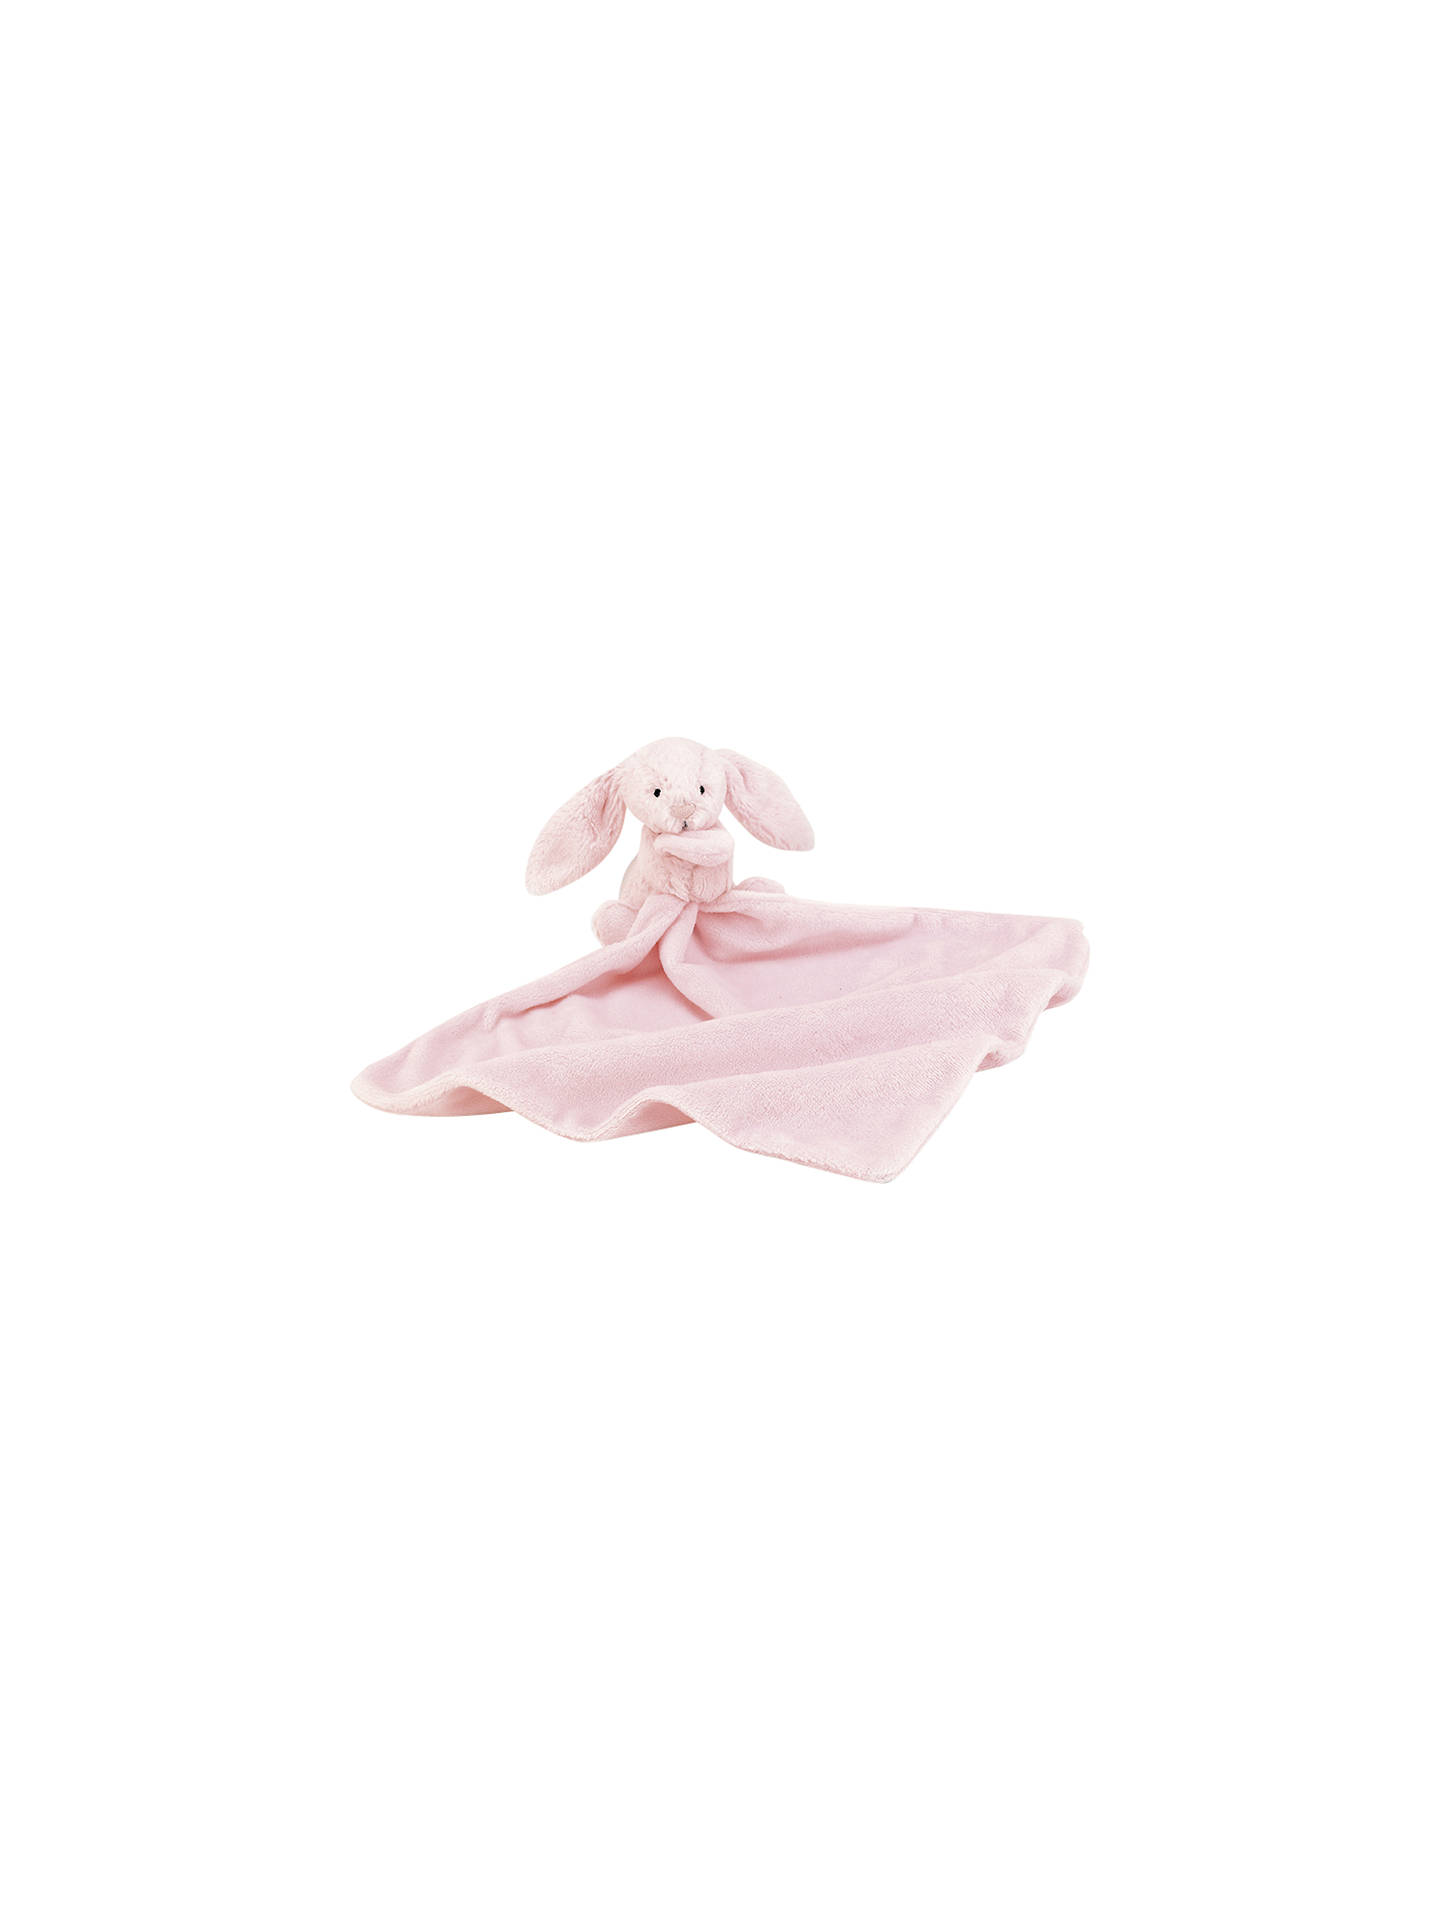 Jellycat Bashful Bunny Baby Soother Soft Toy, Pink